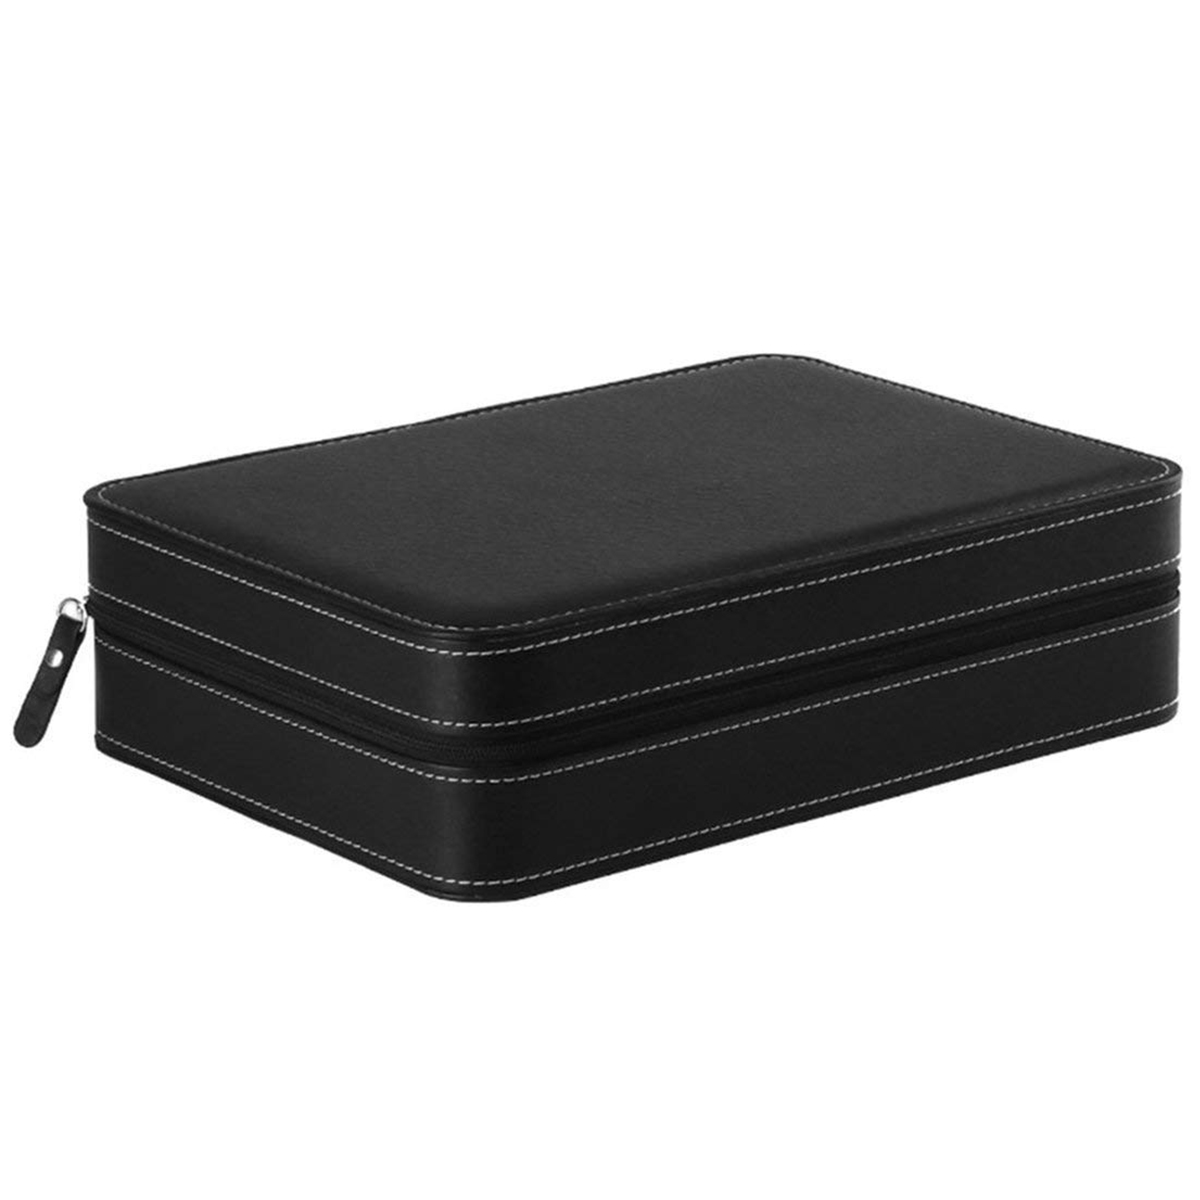 Image 3 - Portable Watch Box Organizer PU Leather Casket with Zipper Classic Style 10 Grids Multi Functional Bracelet Display Case-in Watch Boxes from Watches